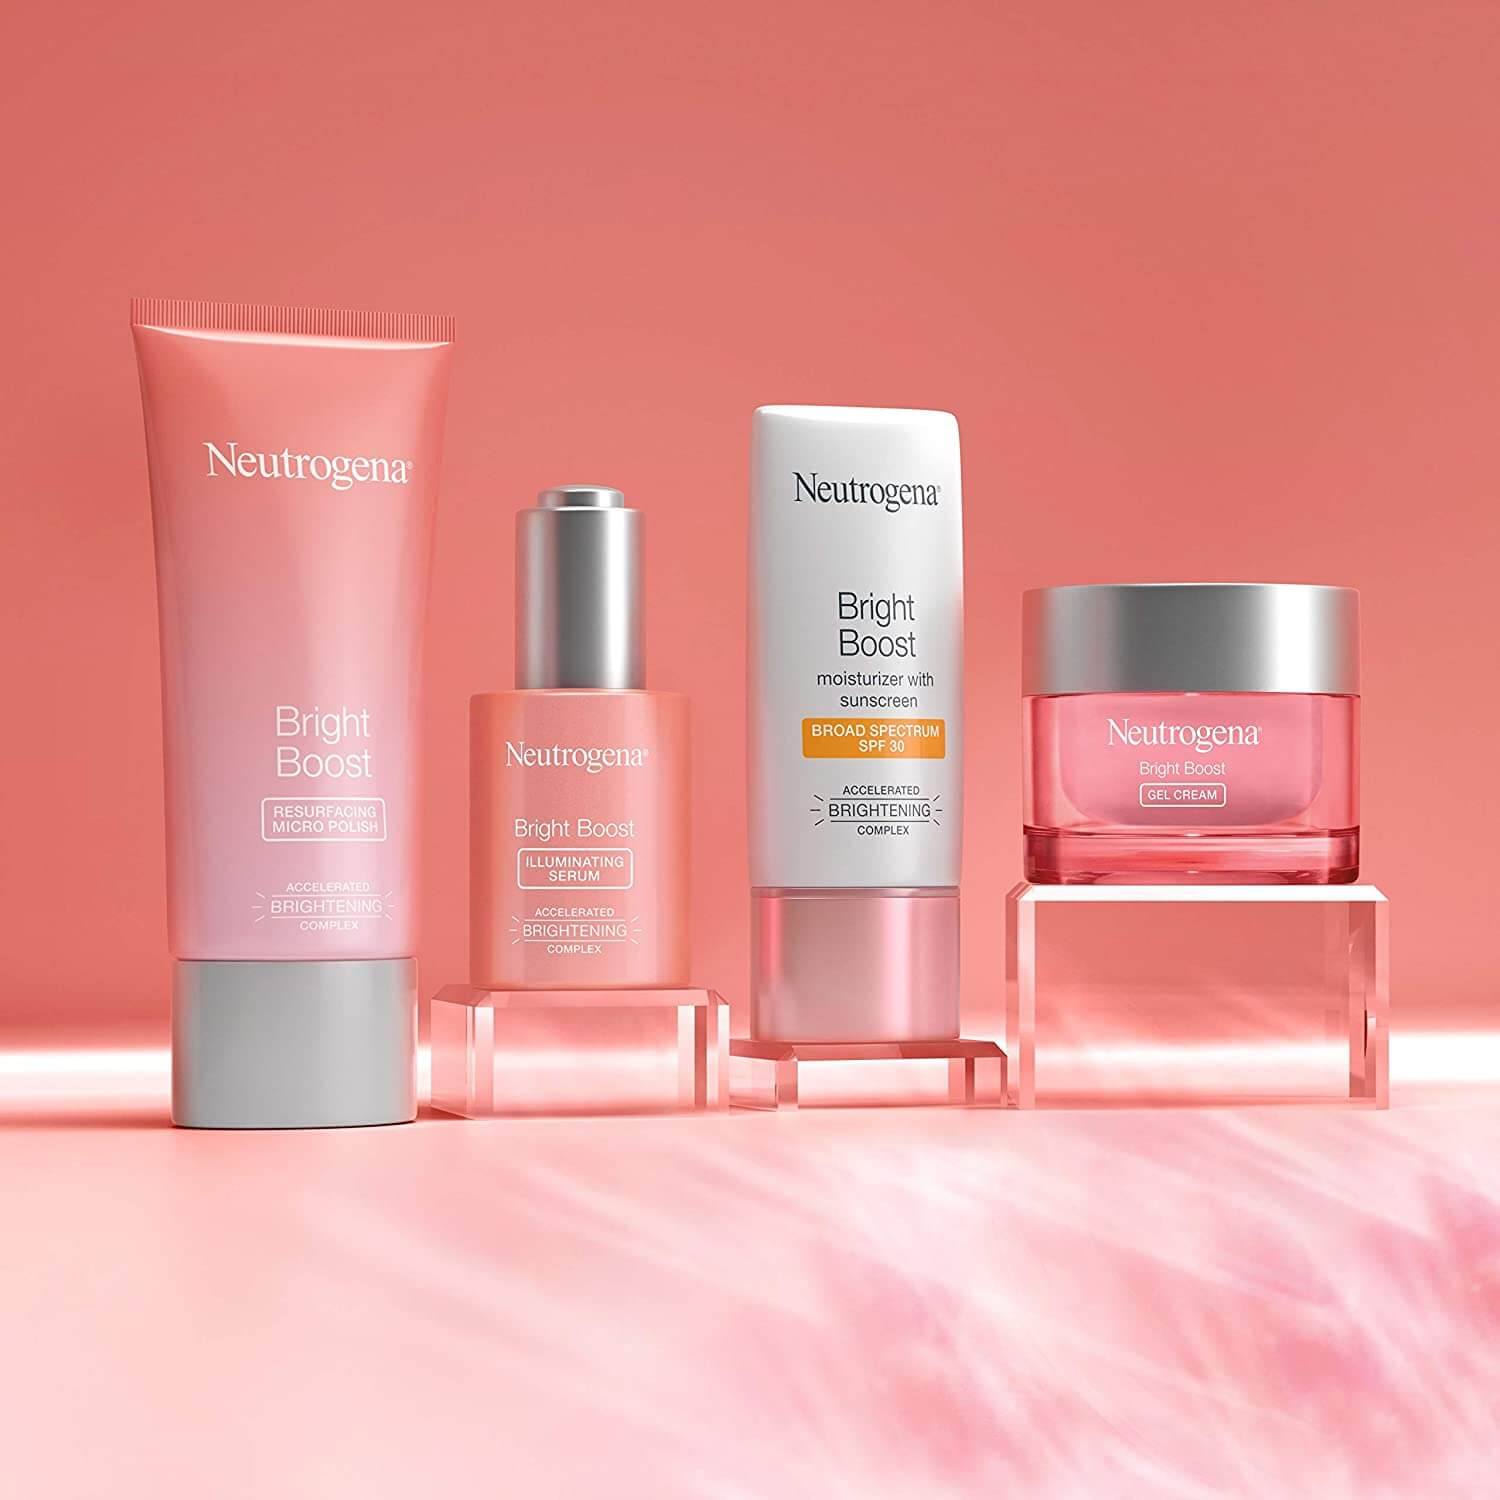 Neutrogena Bright Boost Skincare LIne producst as a part of hydrating facial